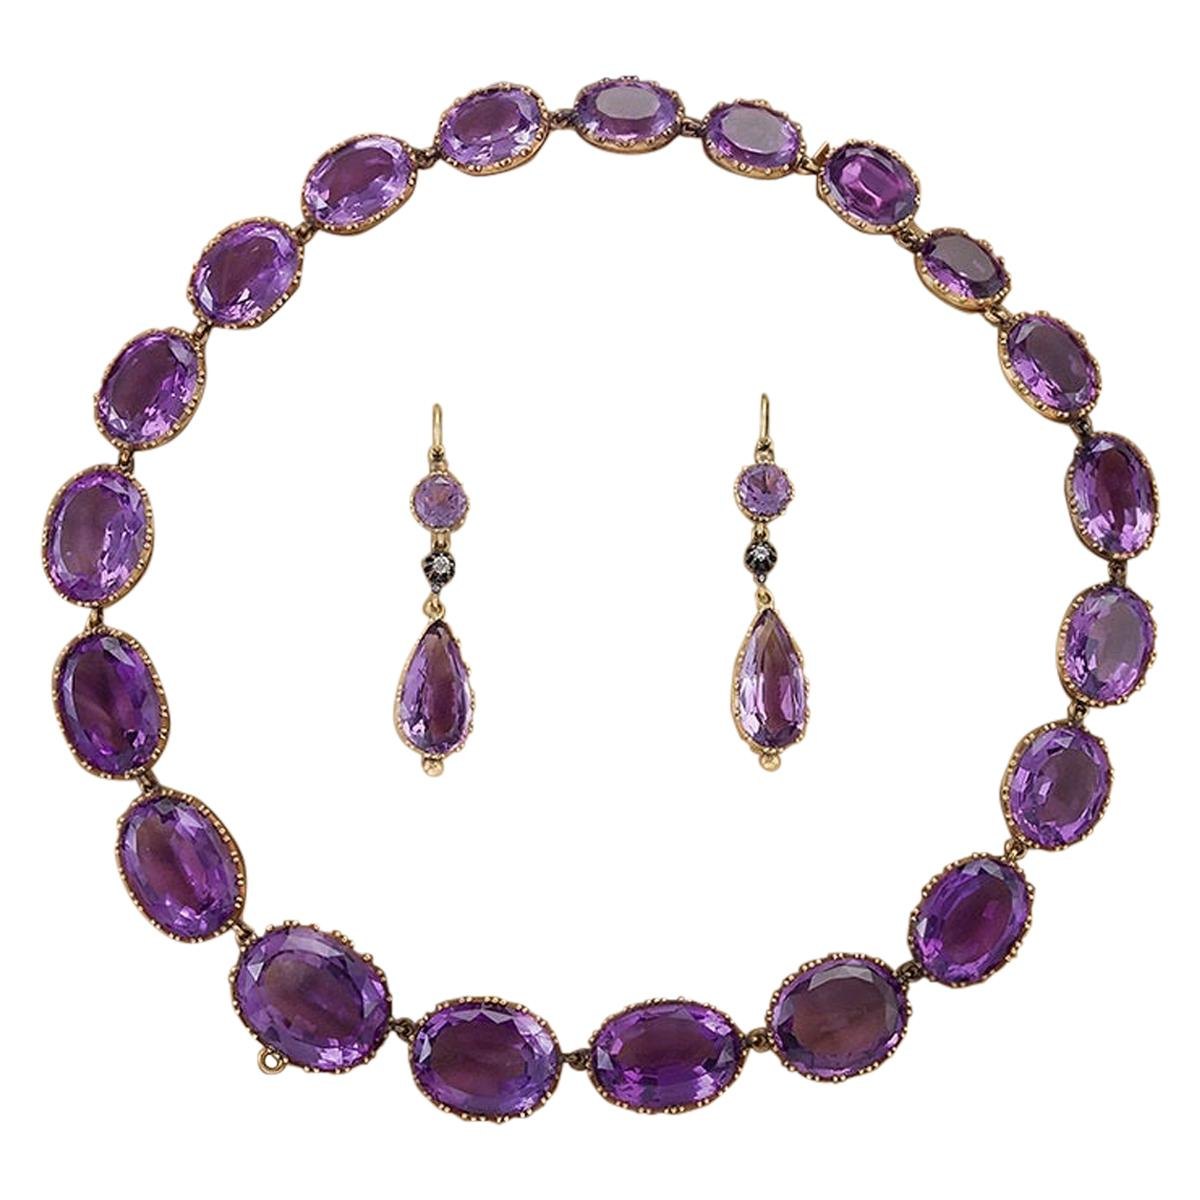 Victorian Amethyst and Gold Parure